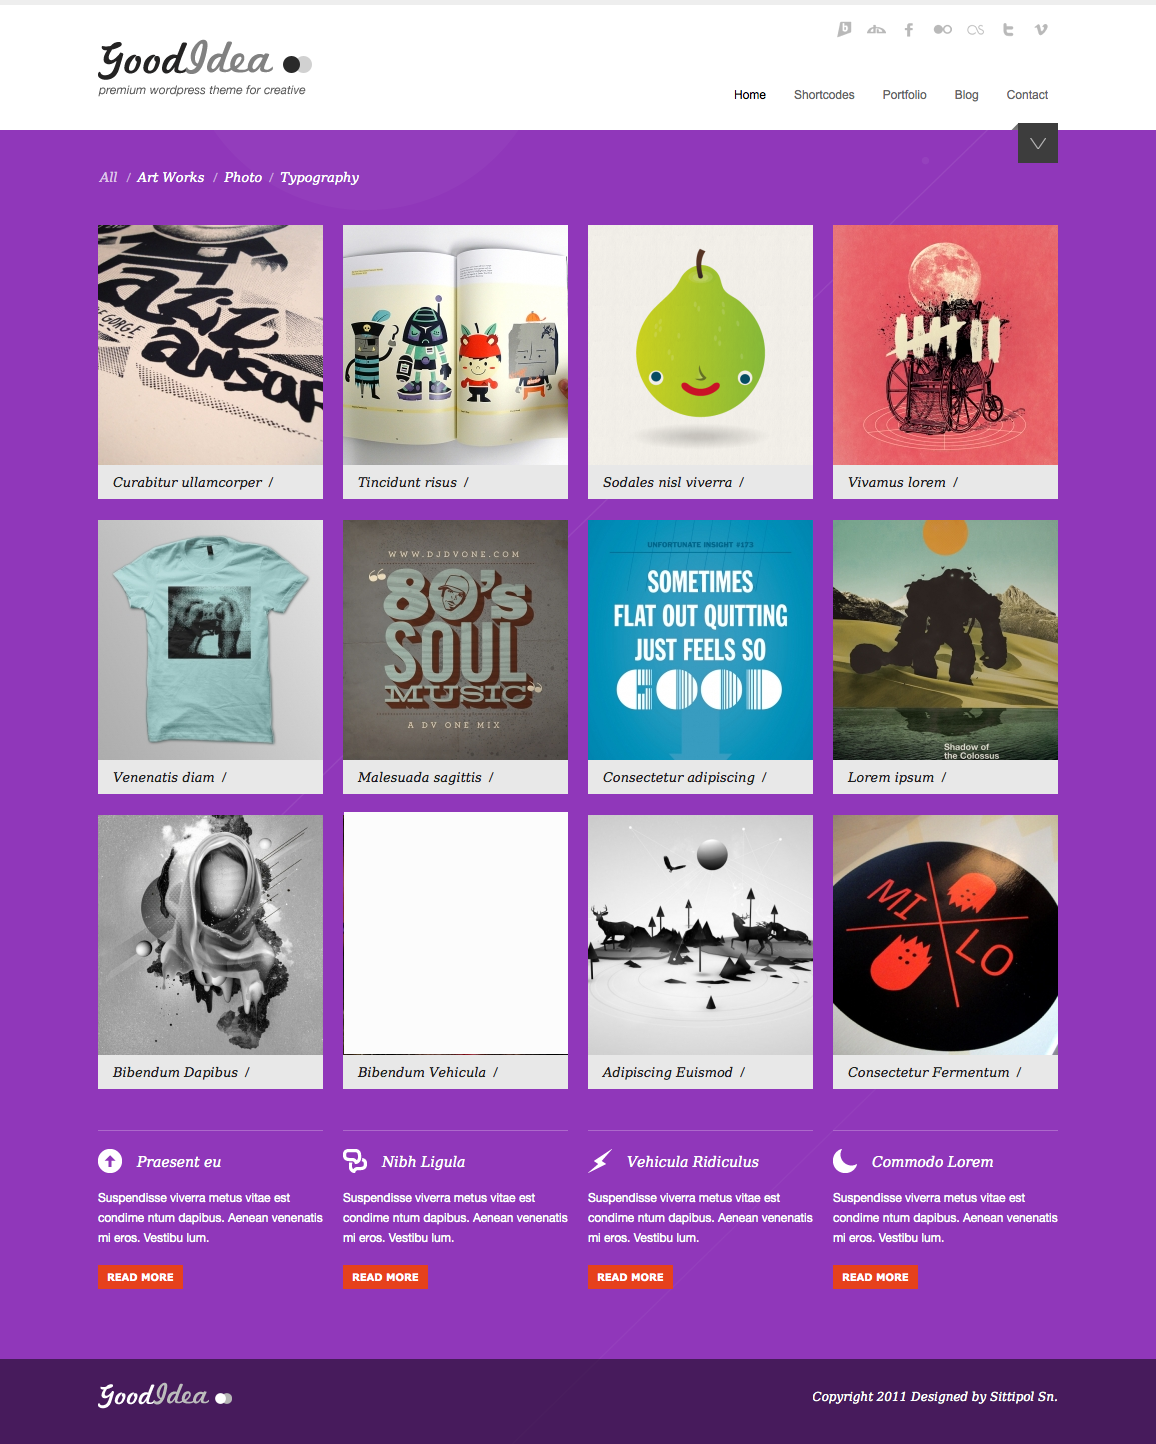 Goodidea - creative wordpress theme - homepage with purple